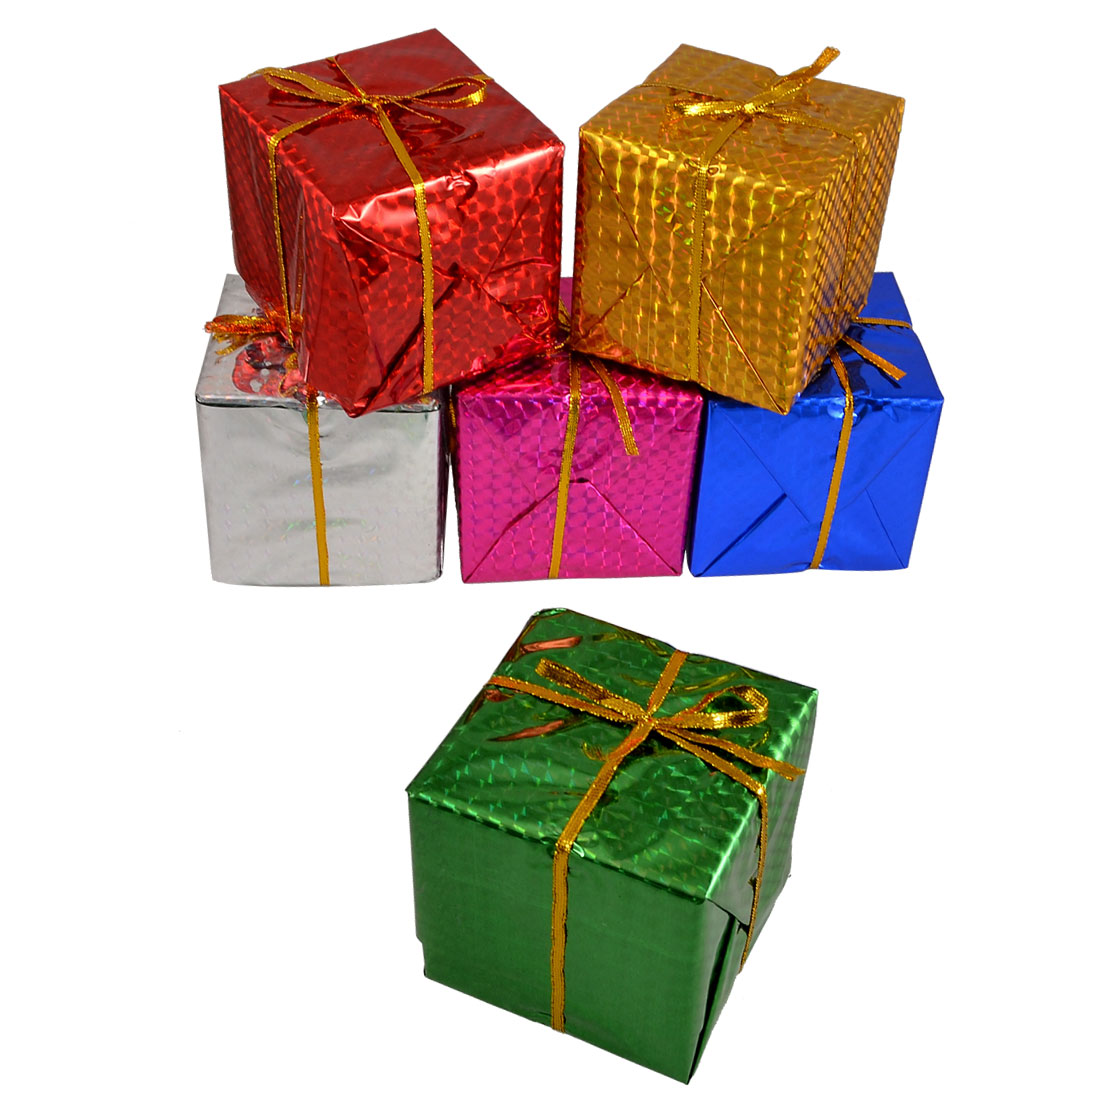 6 Pcs Multi Color 8x8x8cm Cubic Gift Ornament Box Christmas Tree Hanger